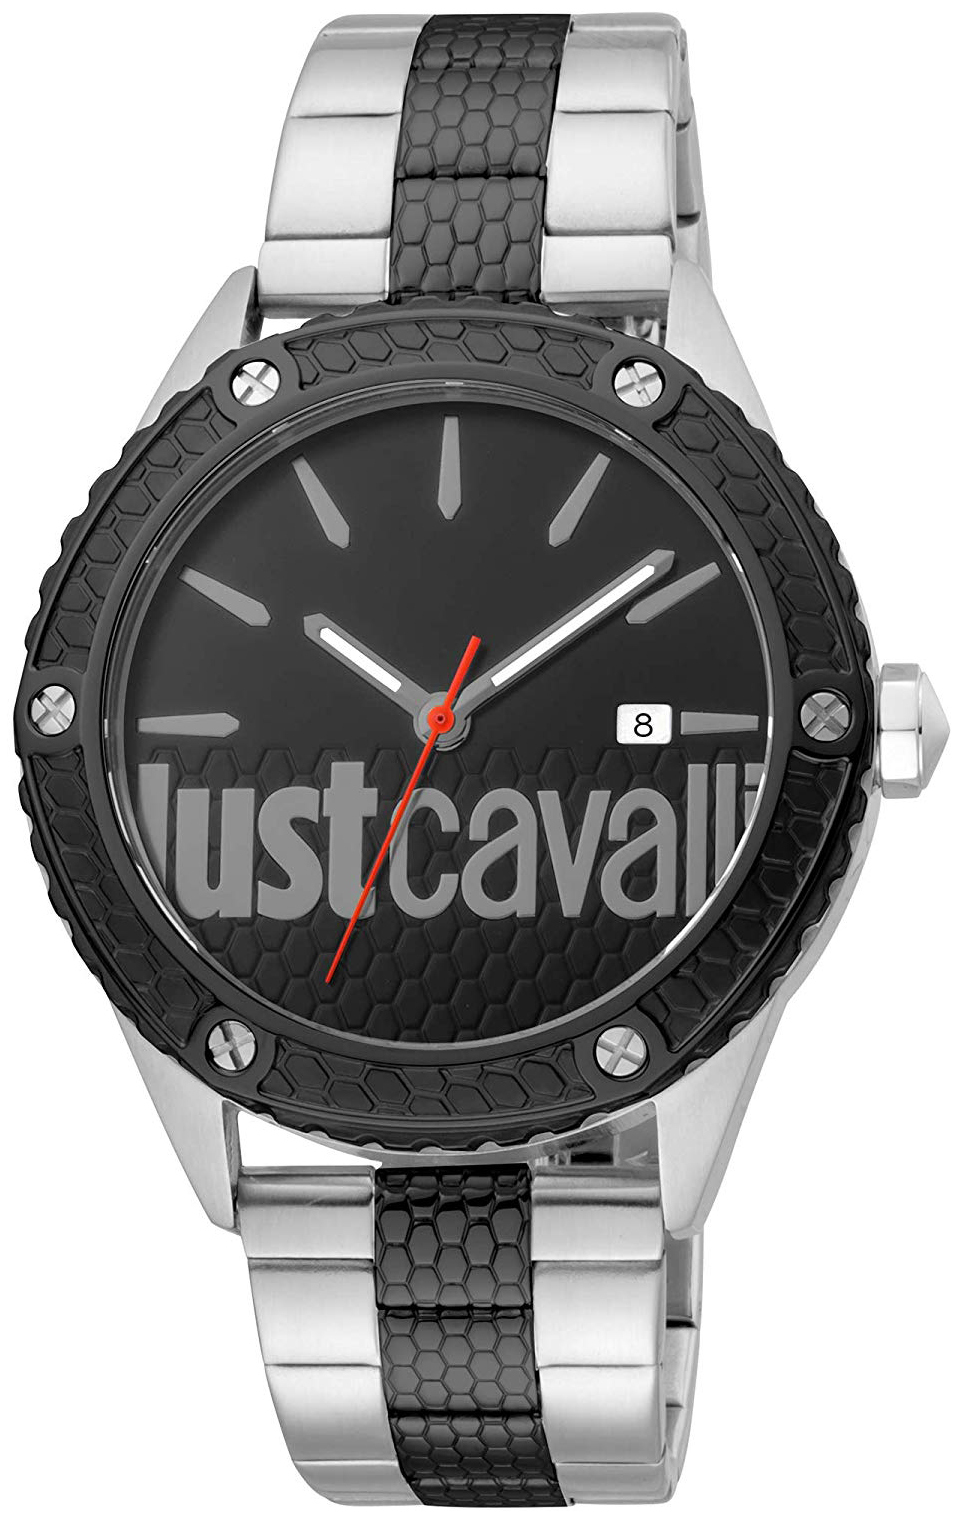 Just Cavalli 99999 Herreur JC1G080M0085 Sort/Stål Ø44 mm